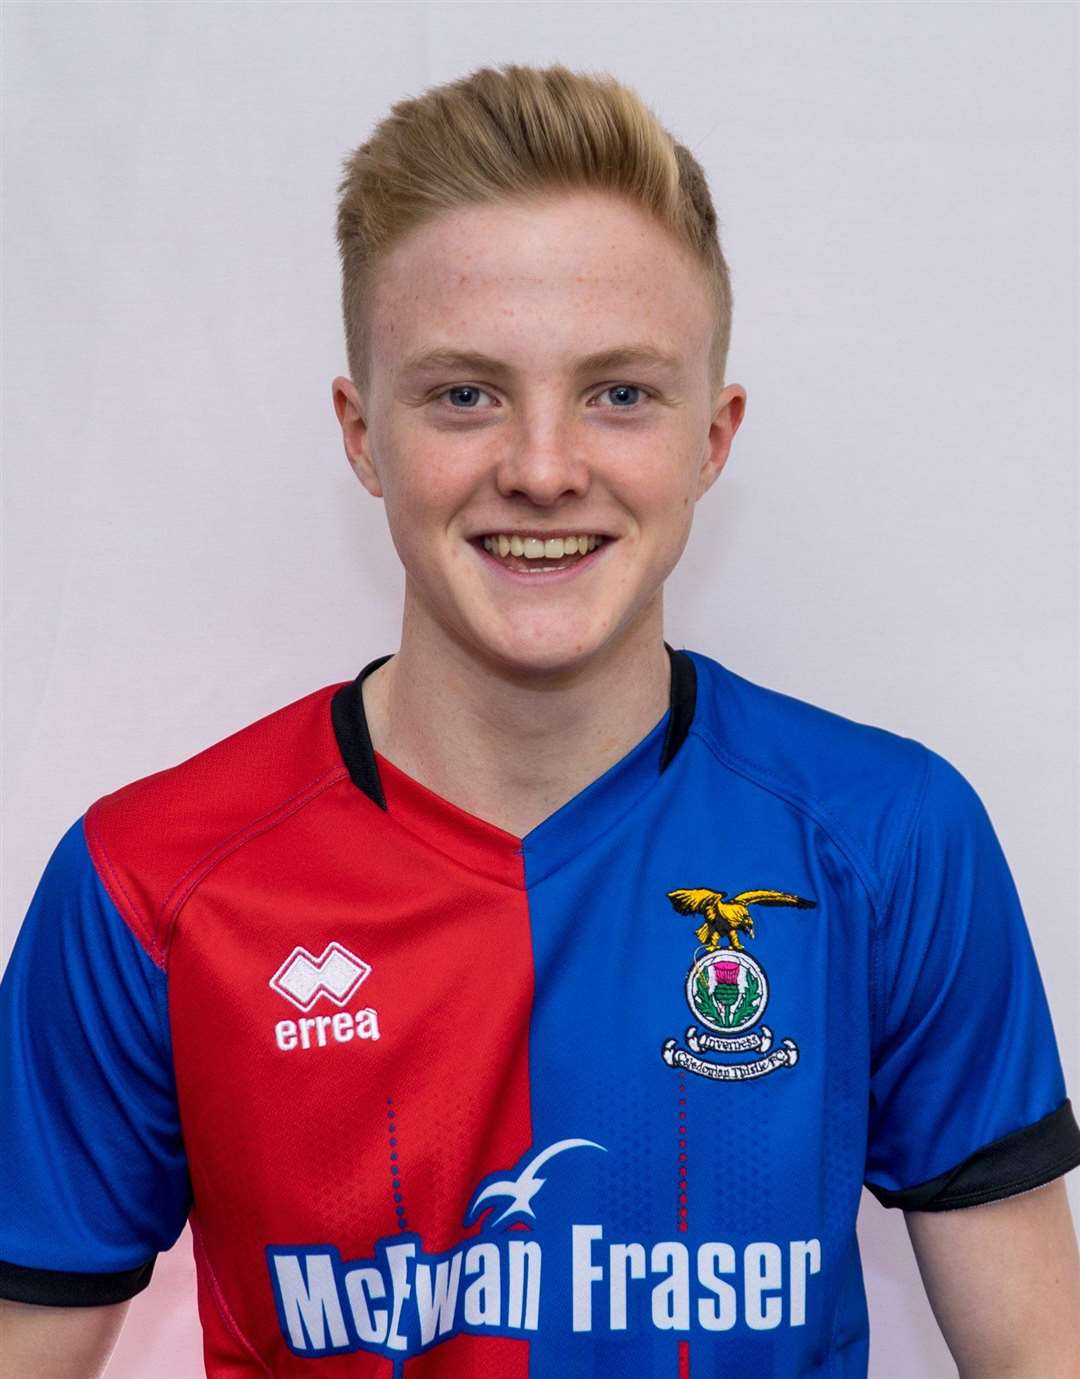 Culloden Academy pupil Lewis Nicolson has been selected for a Scotland under-15s training camp.